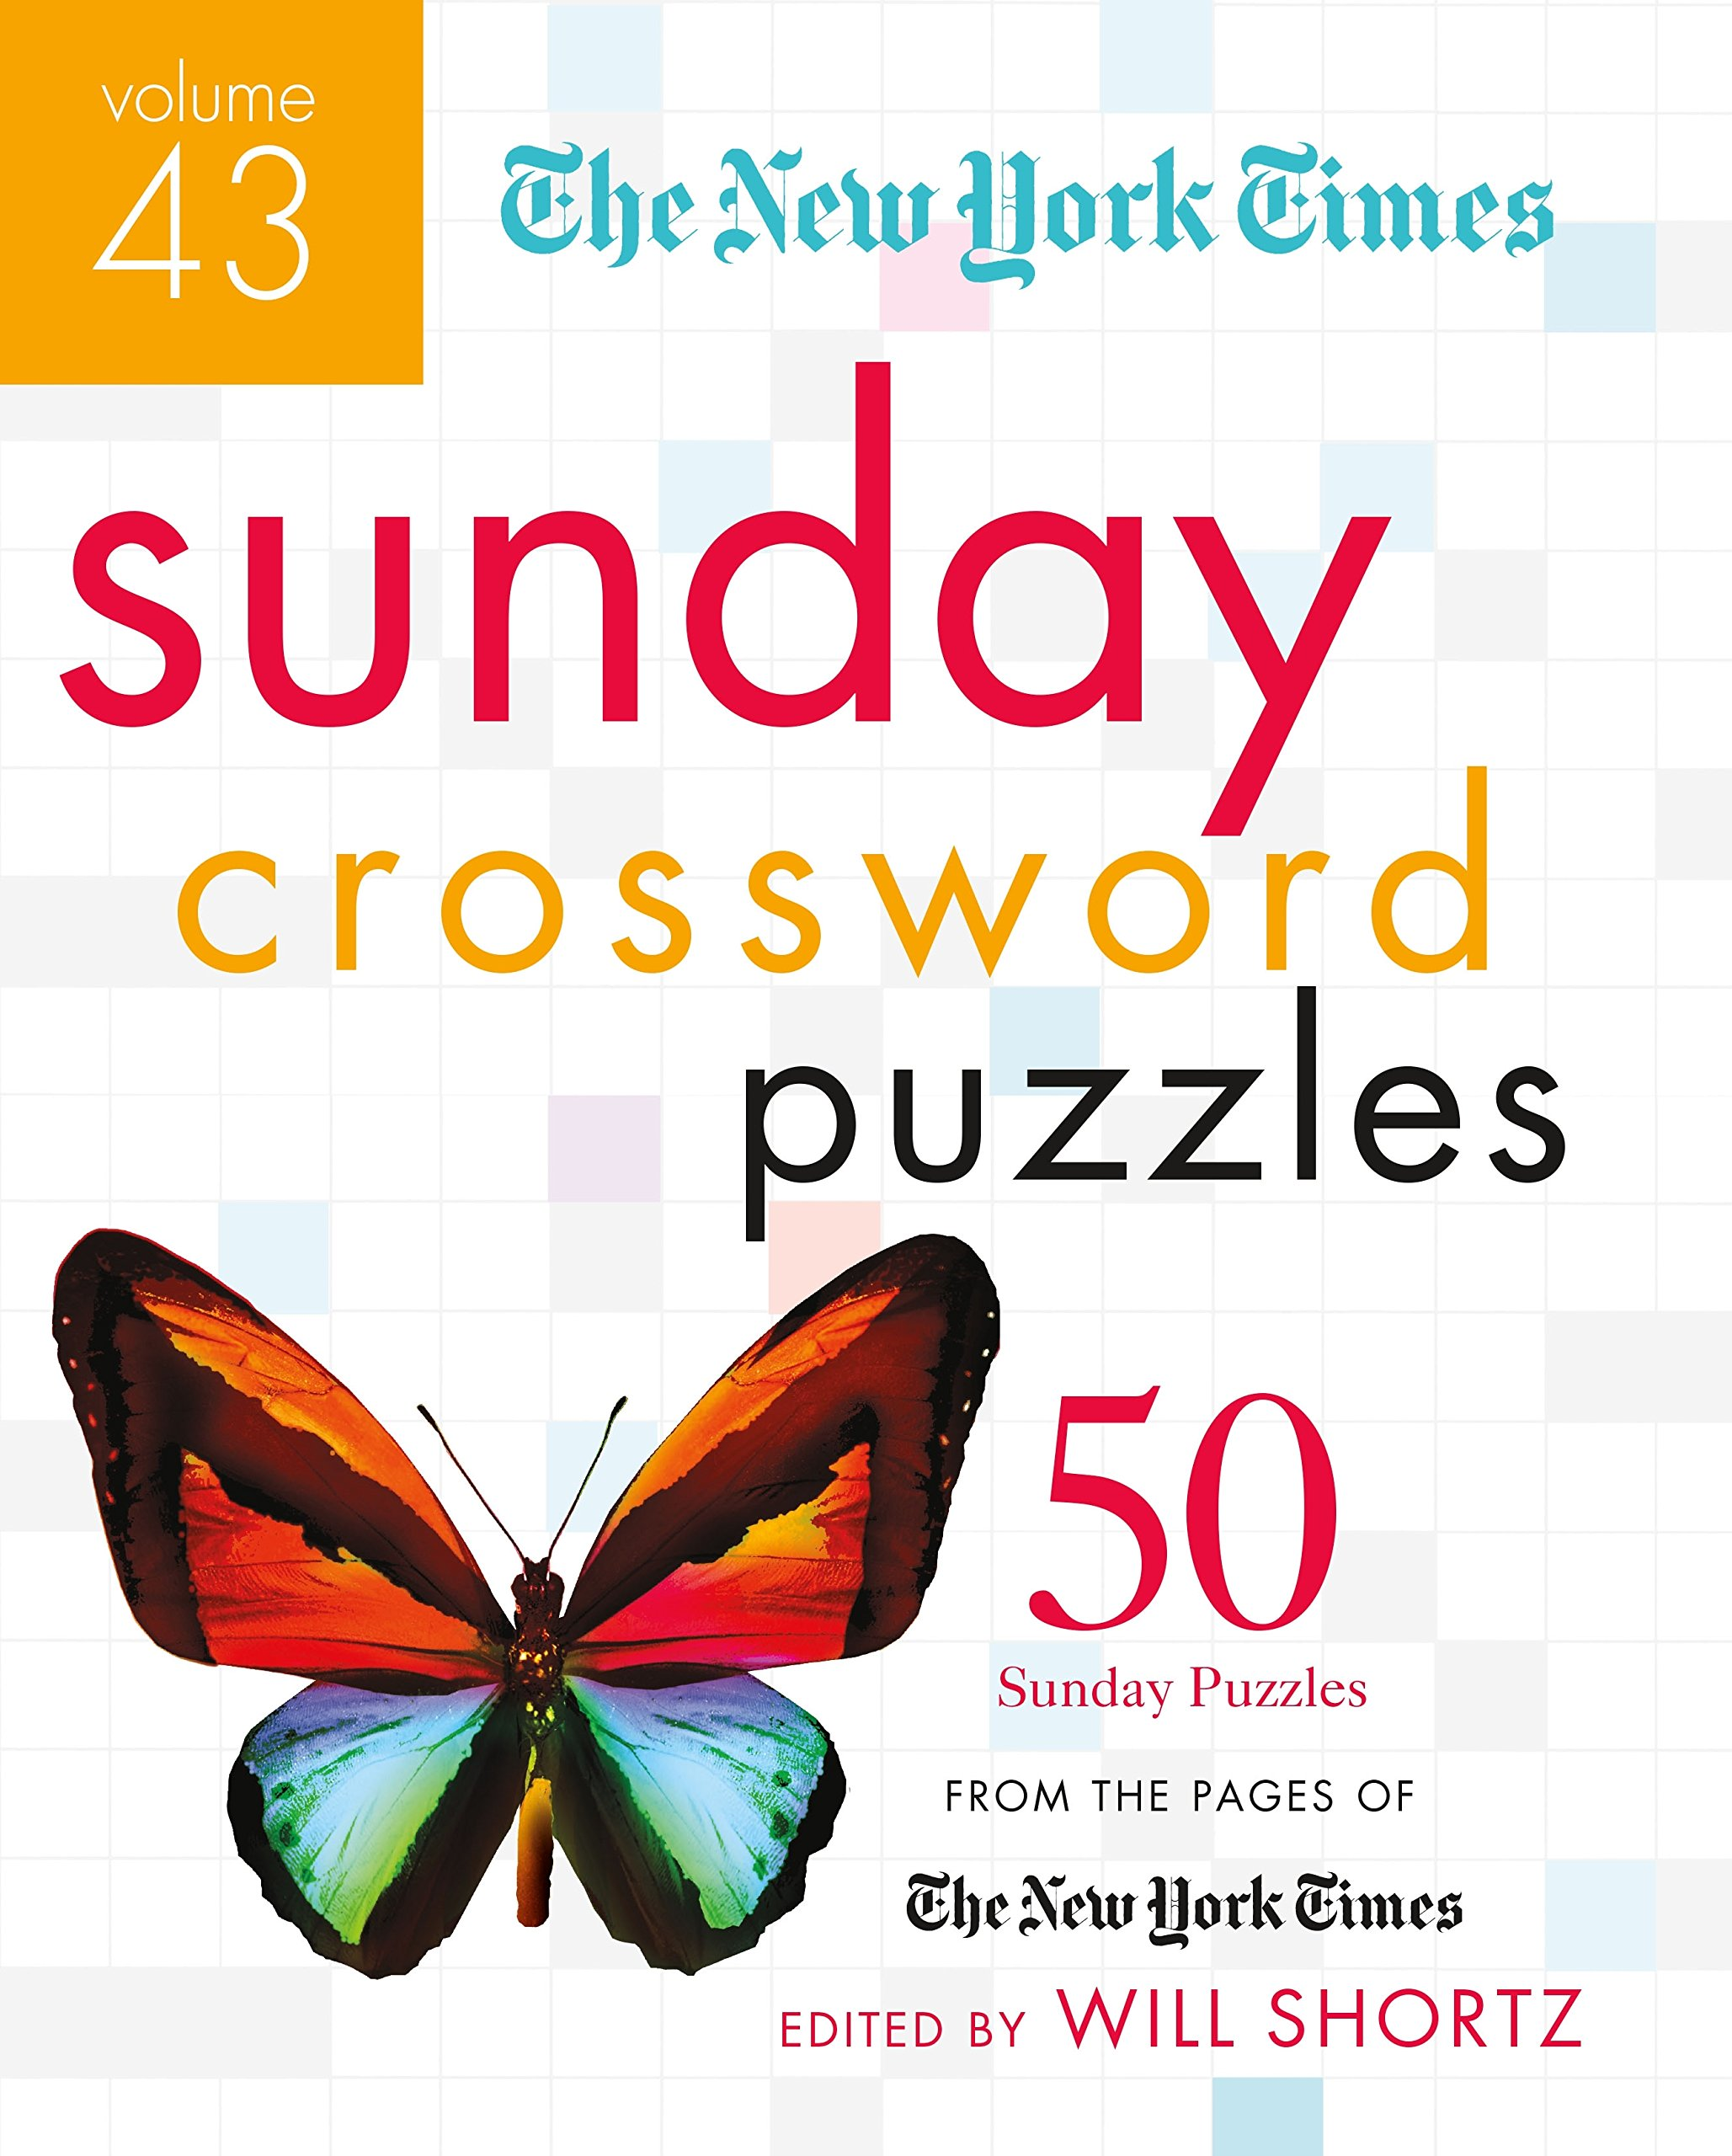 Read Online The New York Times Sunday Crossword Puzzles Volume 43: 50 Sunday Puzzles from the Pages of The New York Times (The New York Times Crossword Puzzles) pdf